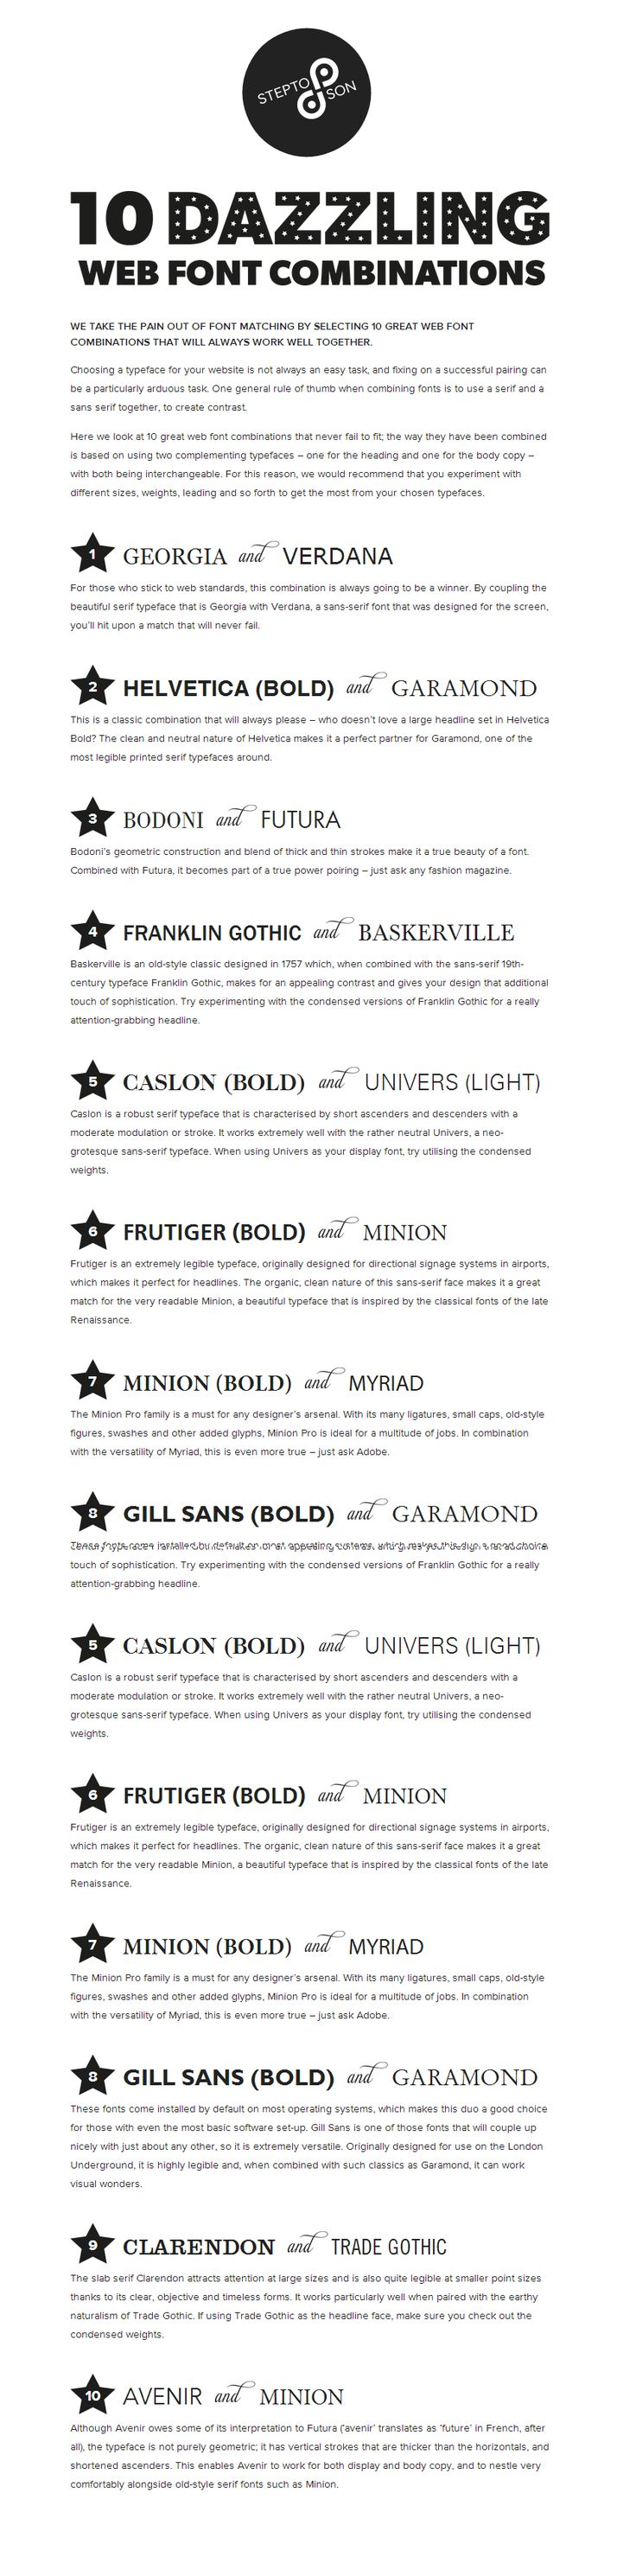 10 great web font combinations | fonts | Pinterest | Tipografía y ...